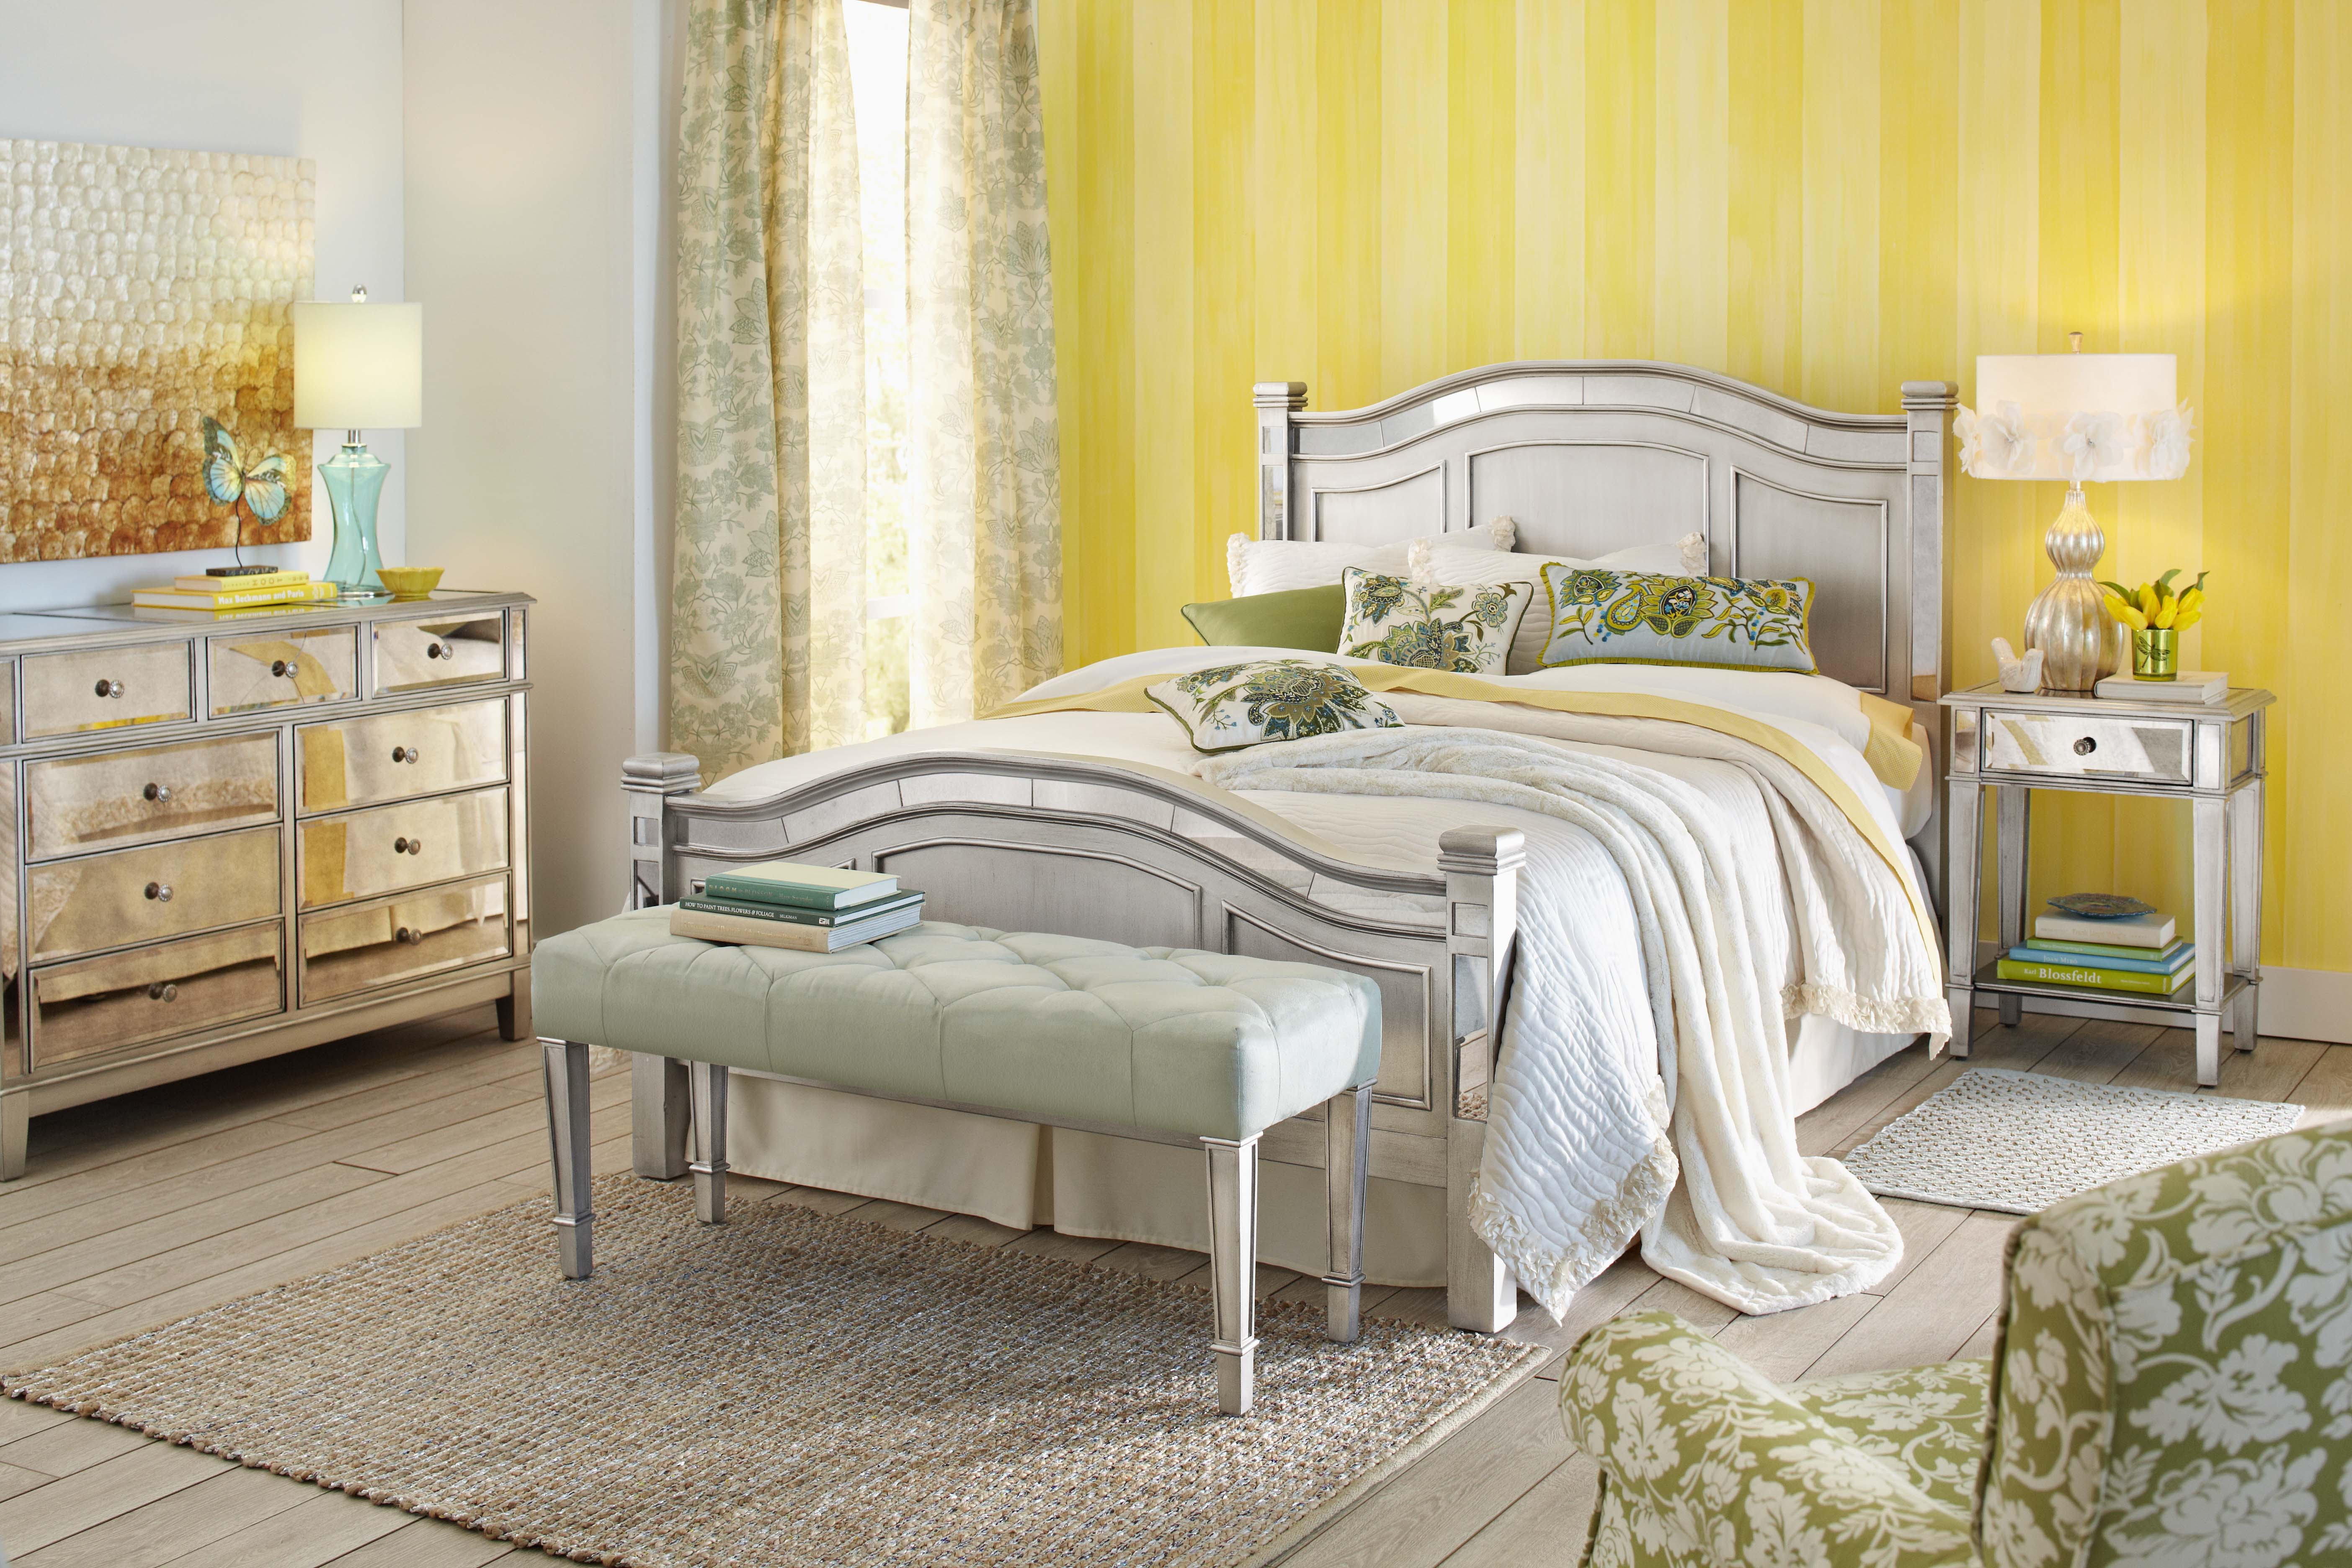 furniture brilliant pier one mirrored for any room chic with bedroom bench and table lamp antique nightstand hayworth dresser media console mirror target bath beyond amazo accent